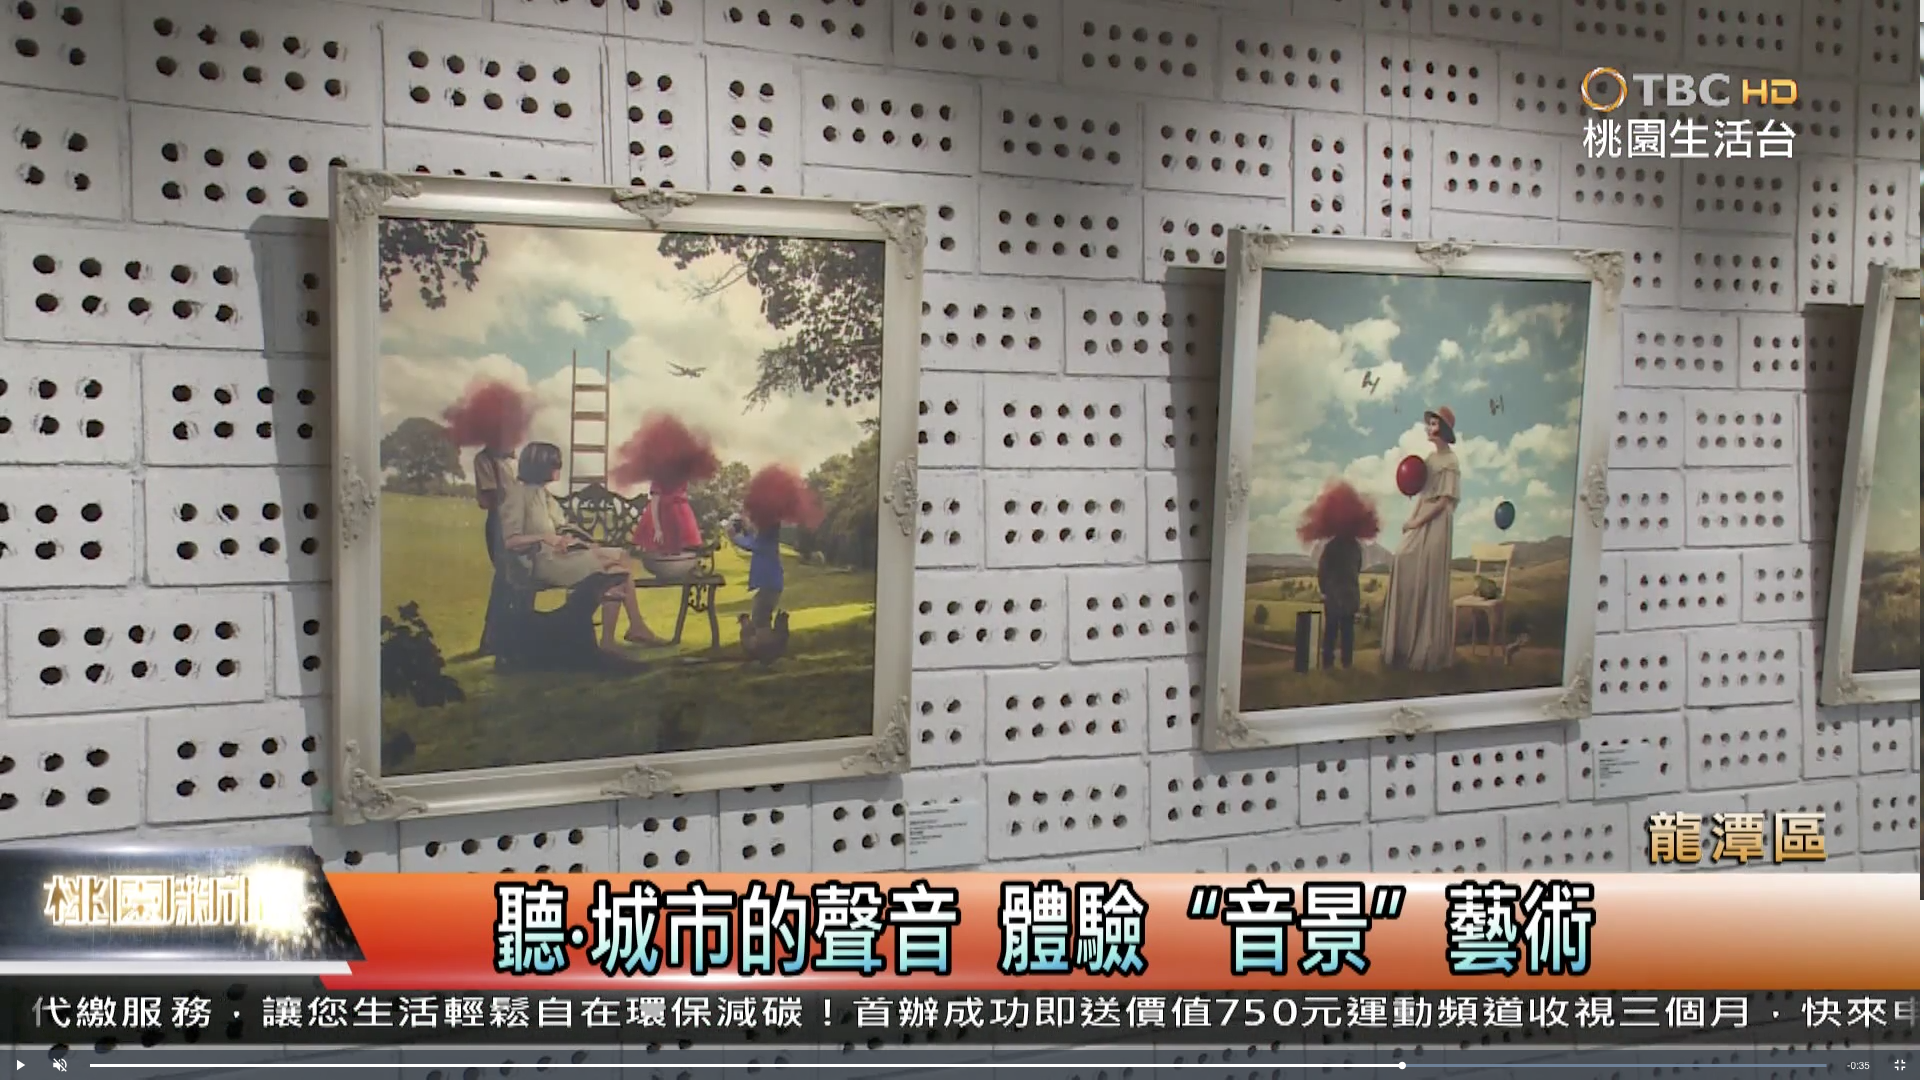 My artworks in Taiwan news TBC HD.png